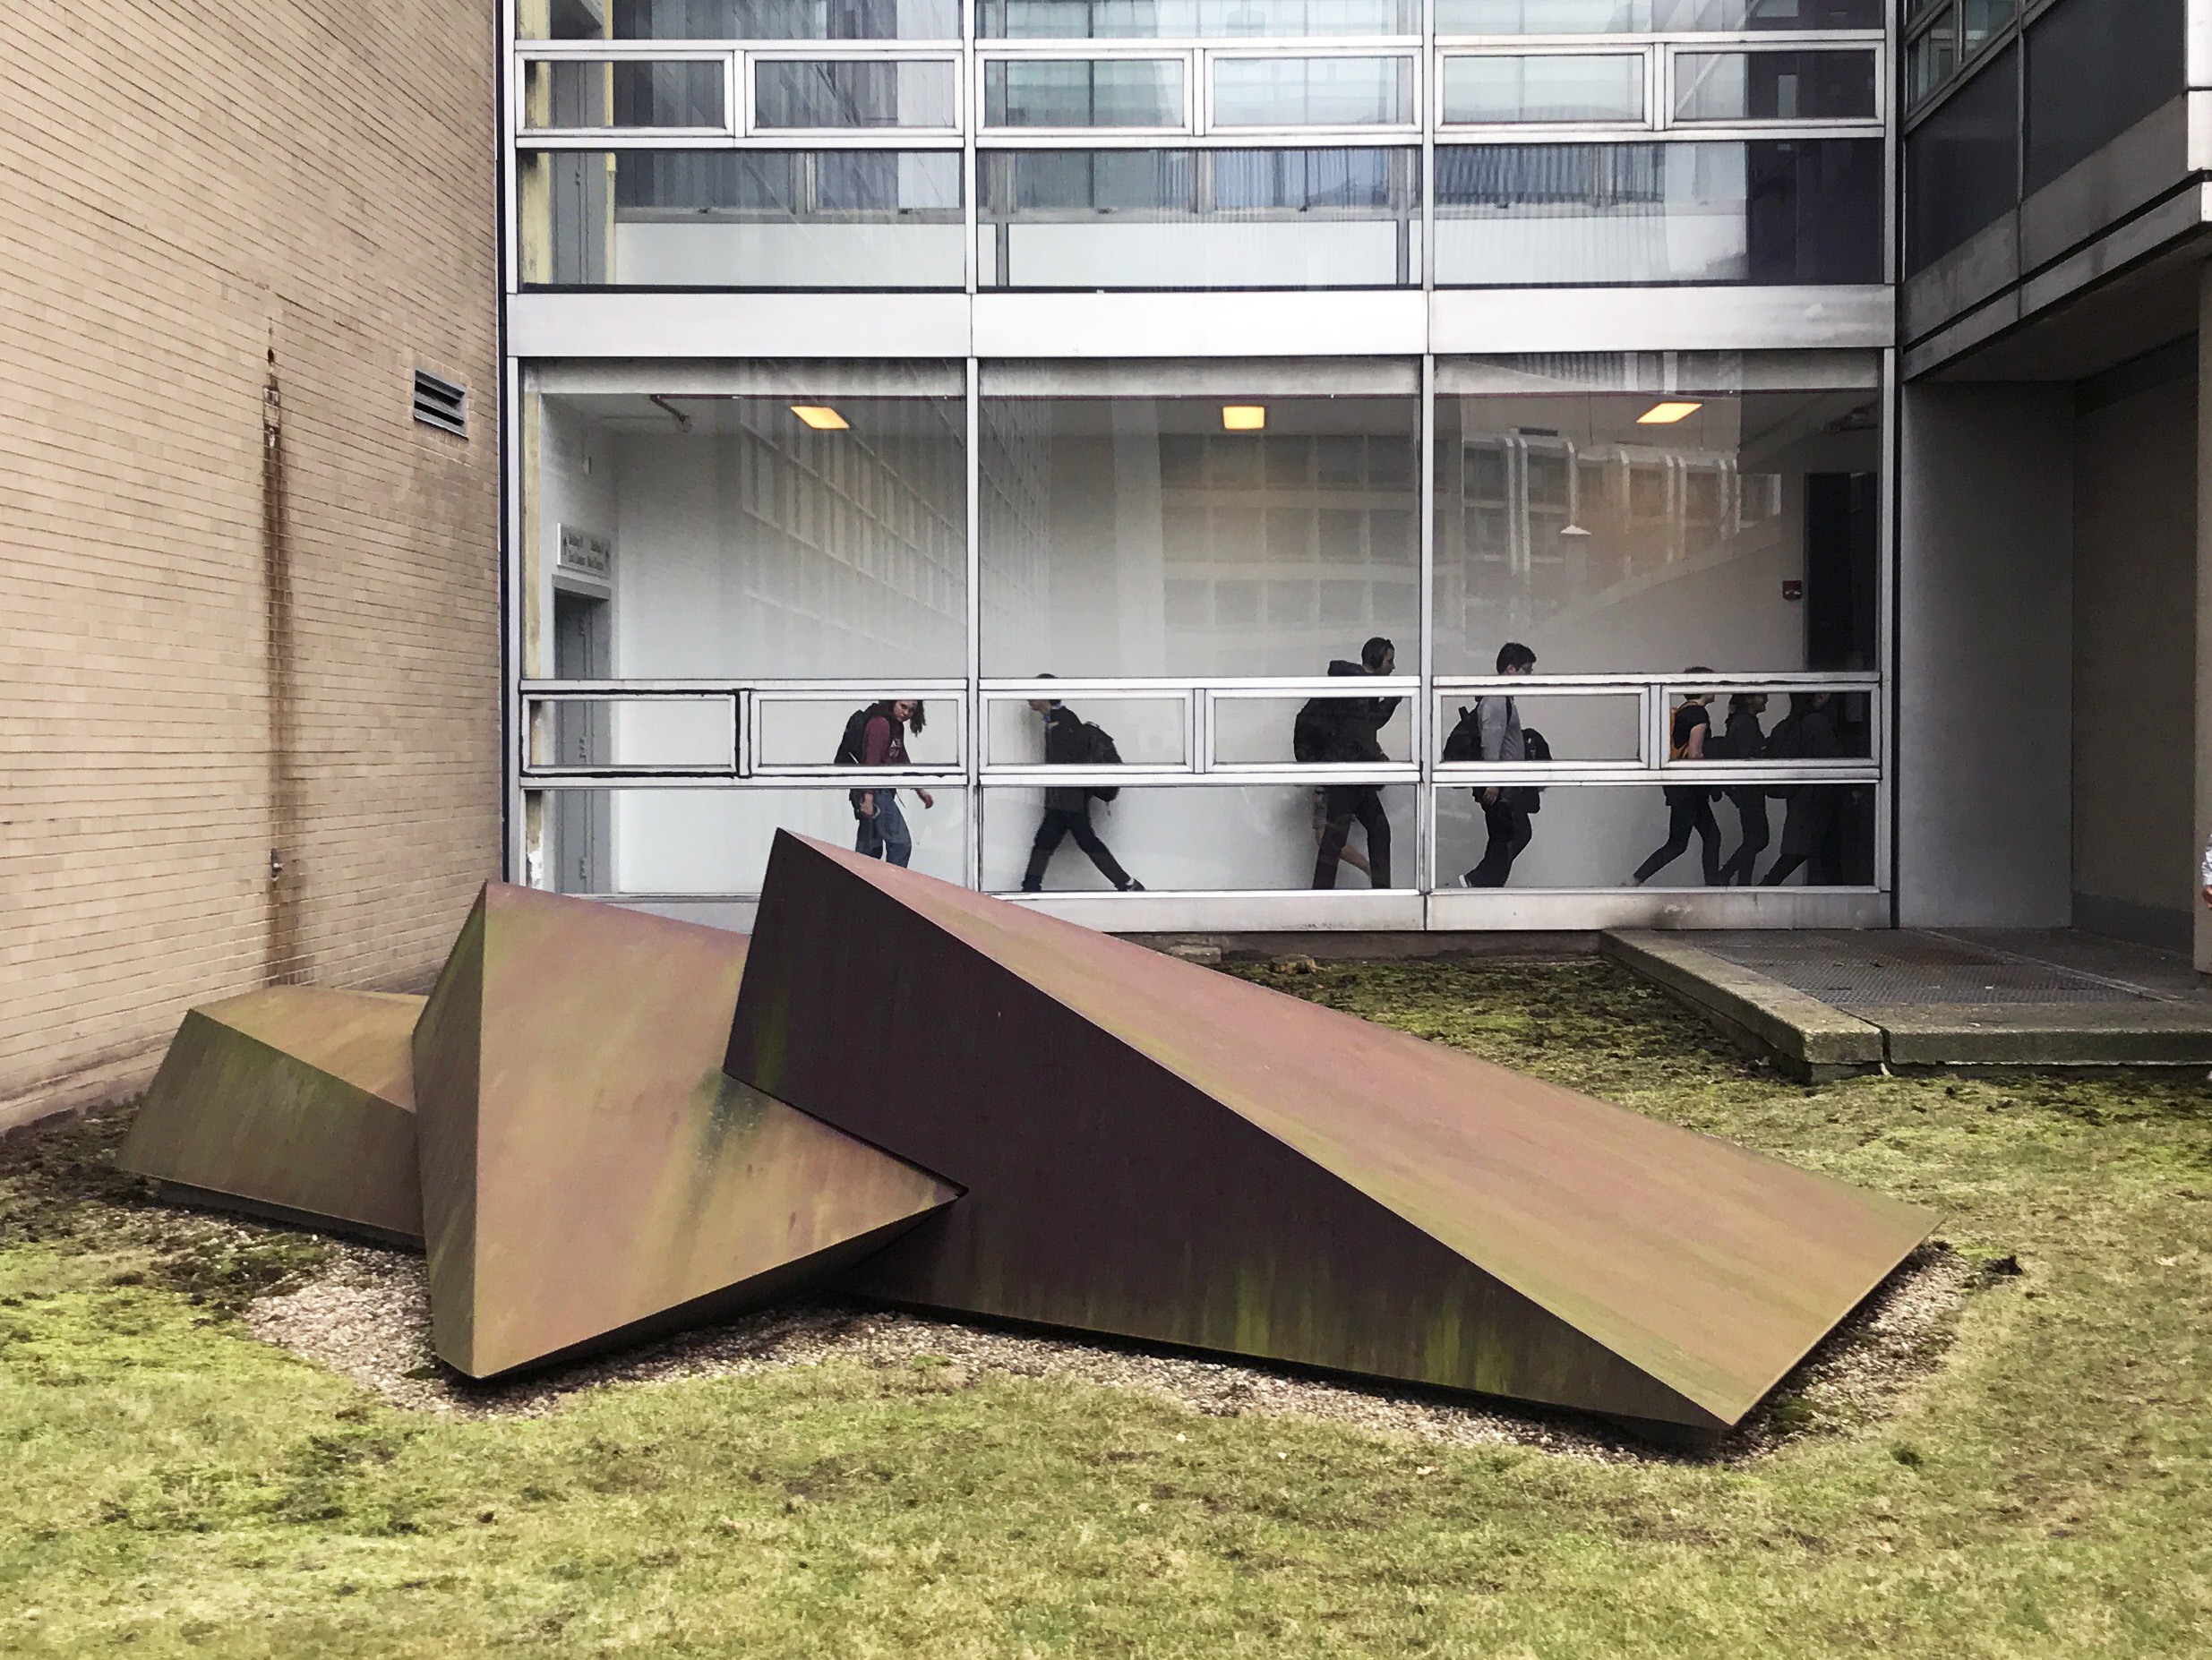 Students are visible walking through the hallway behind Beverly Pepper's Trinity, 1971, which sits on the lawn between MIT Buildings 16 and 26.